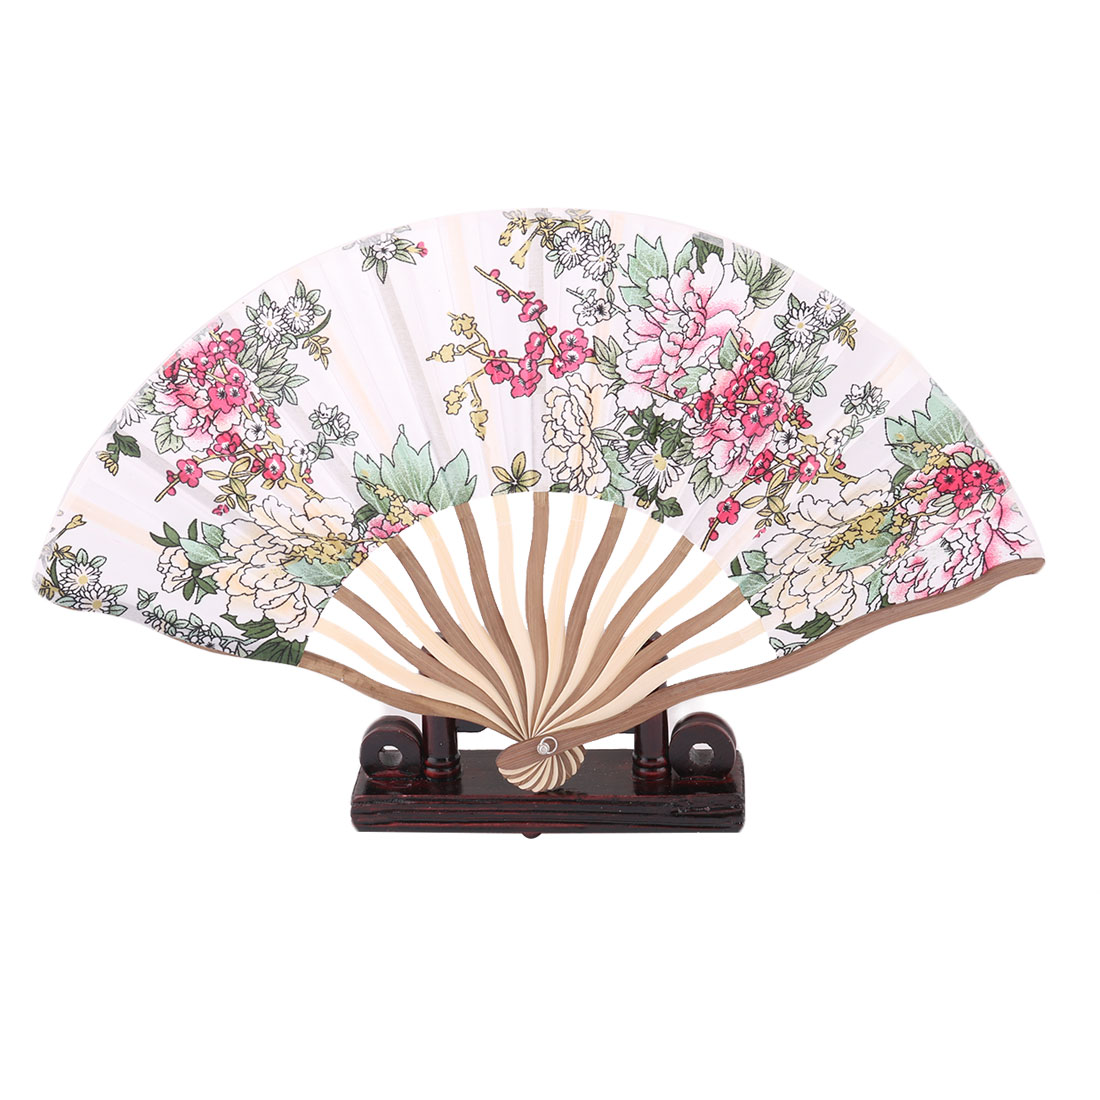 Bamboo Frame Flower Print Chinese Cooling Foldable Hand Fan Display Green 2 in 1